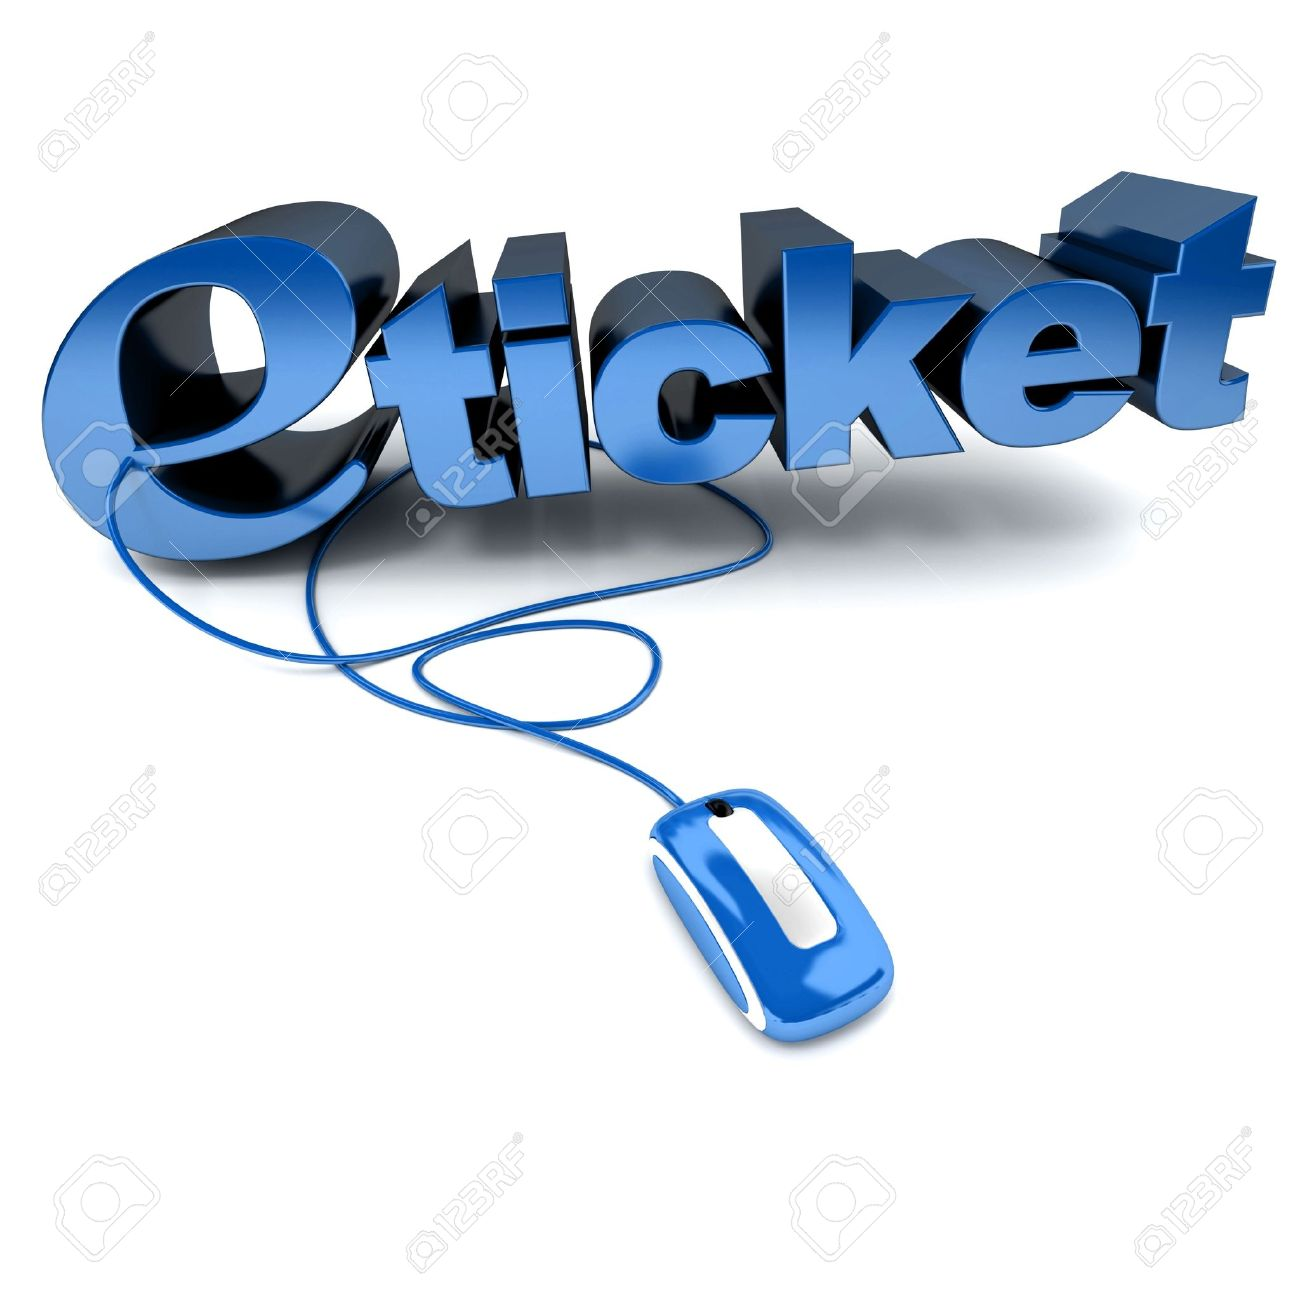 blue and white 3d illustration of the word e ticket connected illustration blue and white 3d illustration of the word e ticket connected to a computer mouse